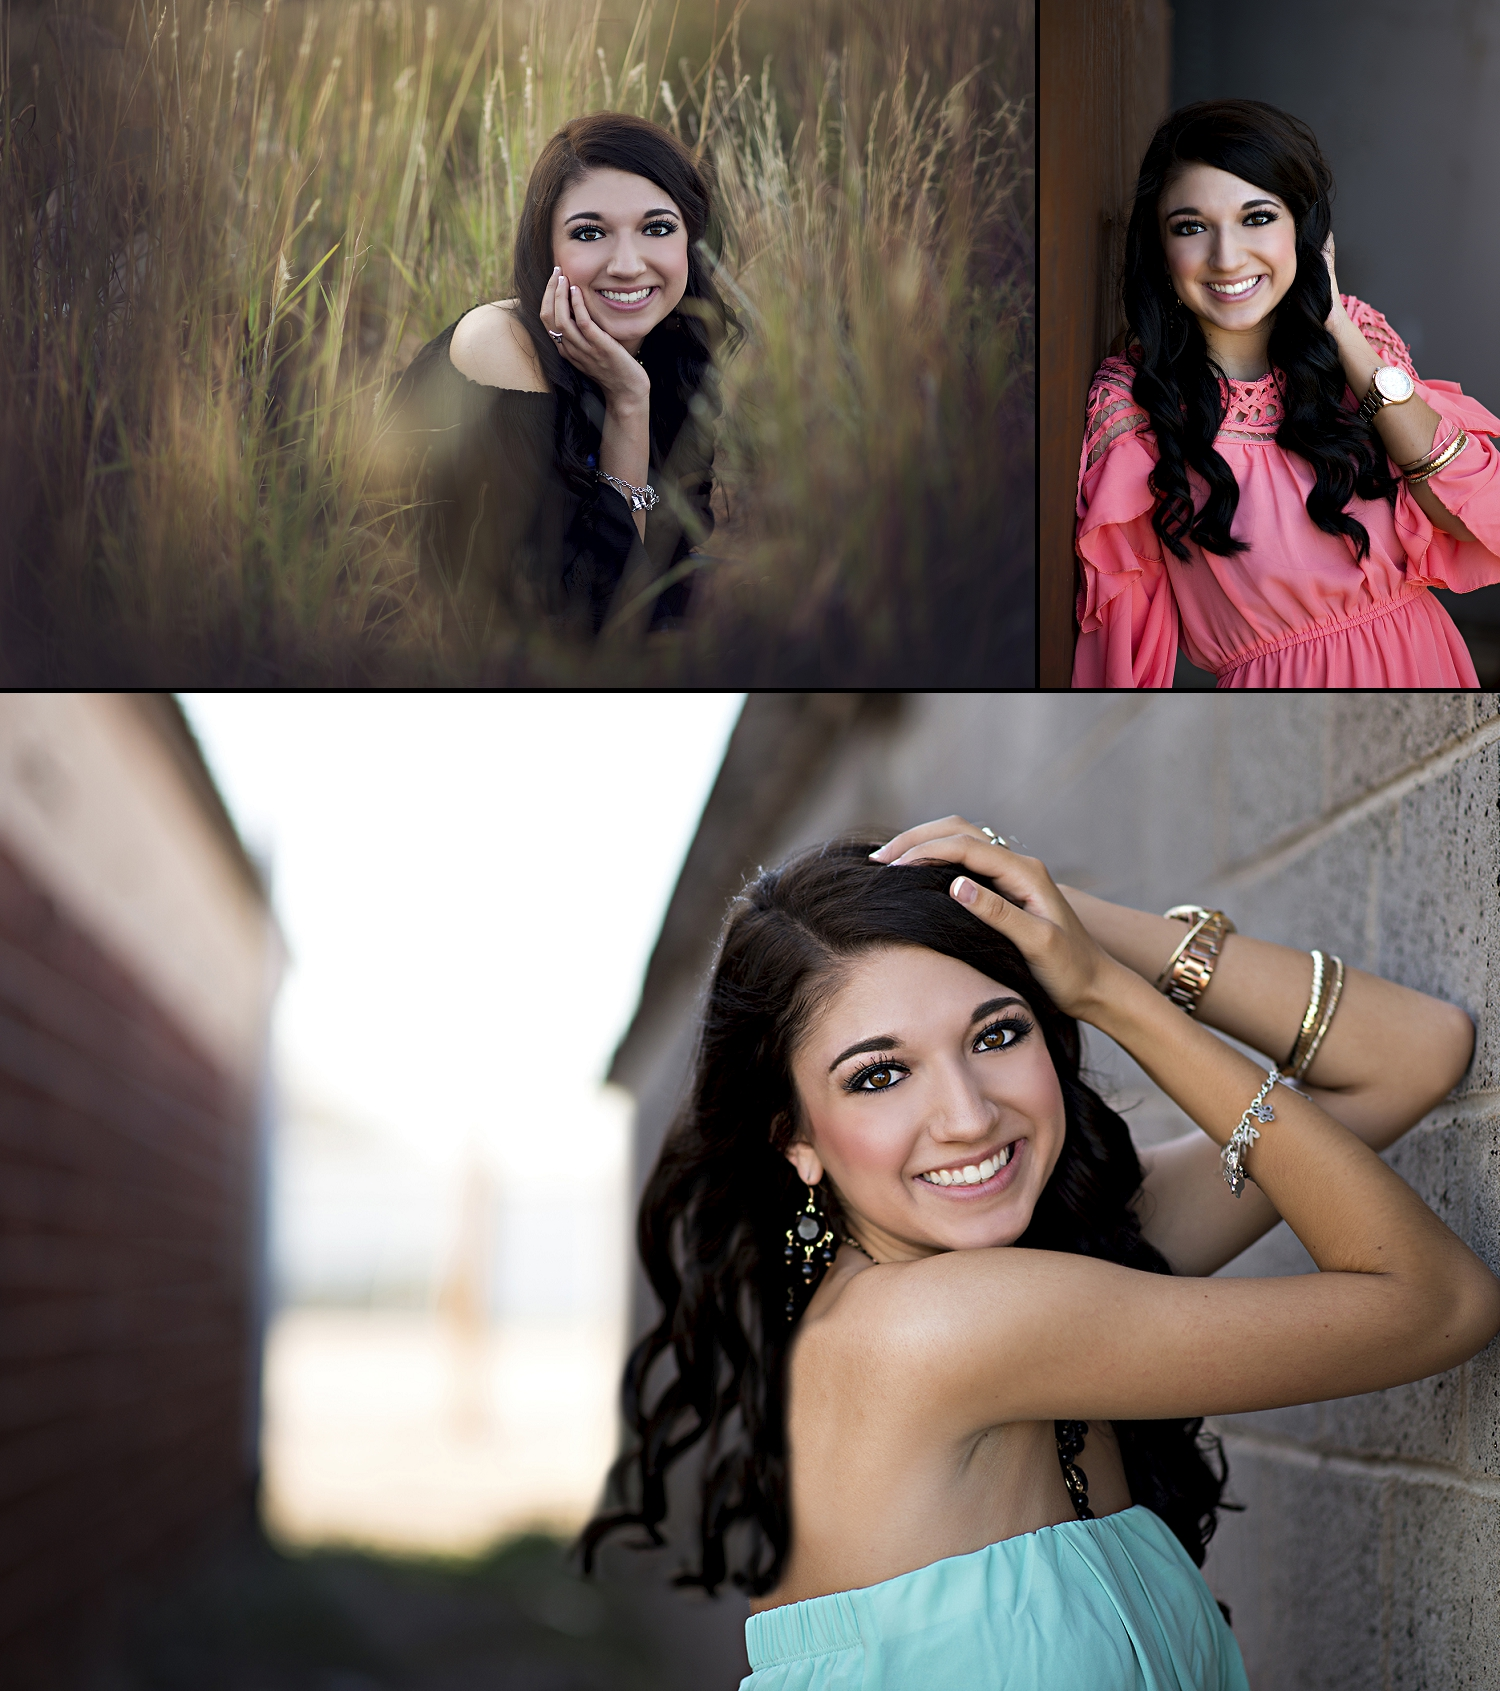 midland lee high school, senior, class of 2015, beauty